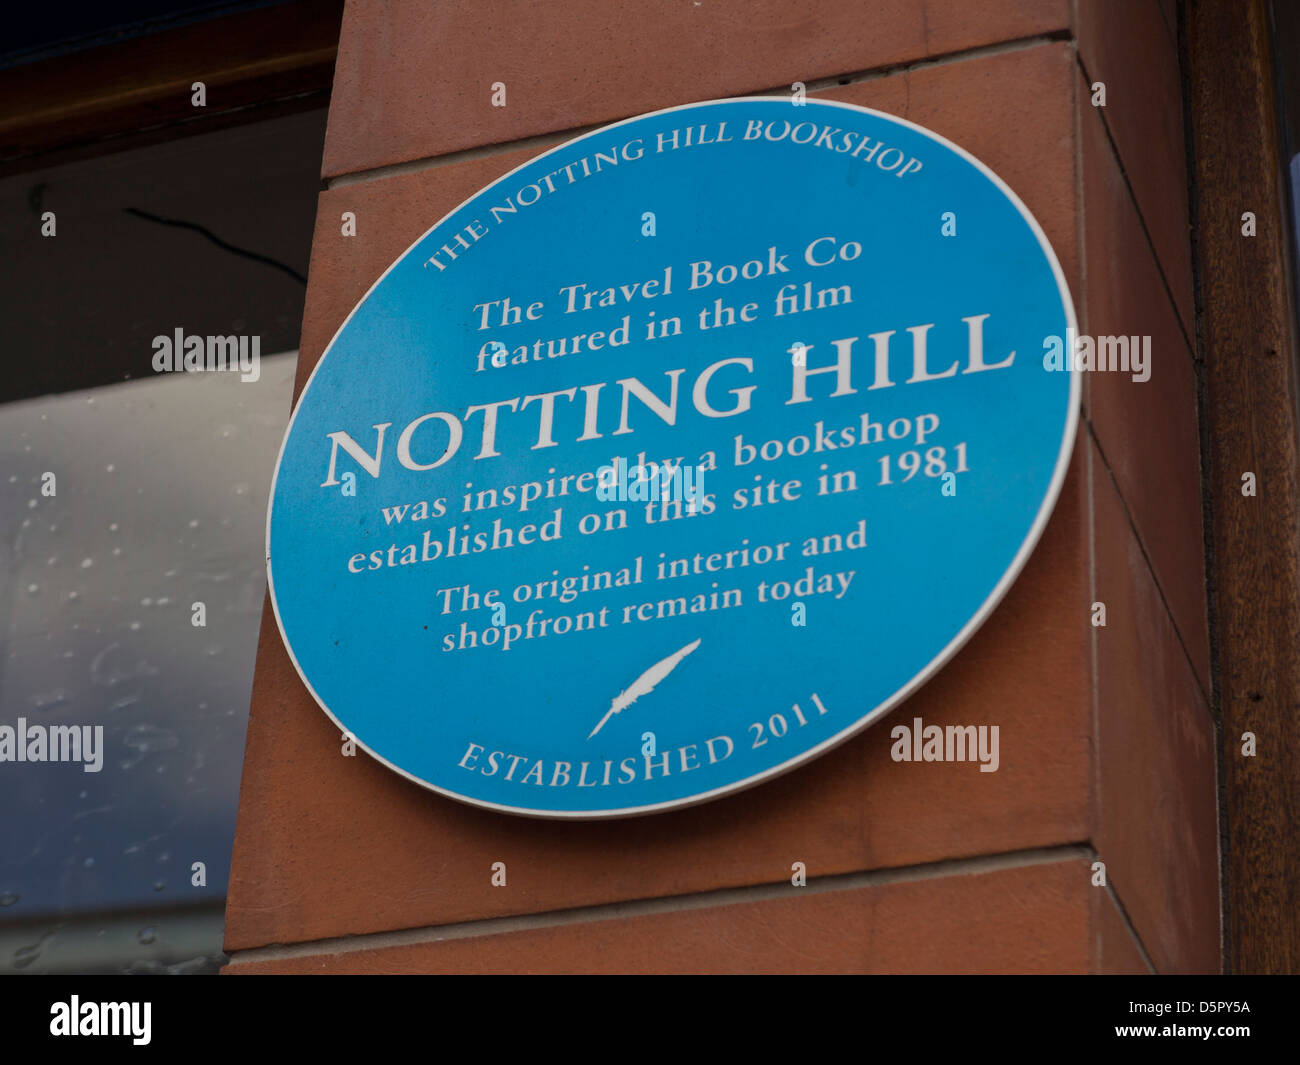 Sign outside the Notting Hill travel bookshop,London,made famous in film 'Notting Hill' starring Julia Roberts - Stock Image